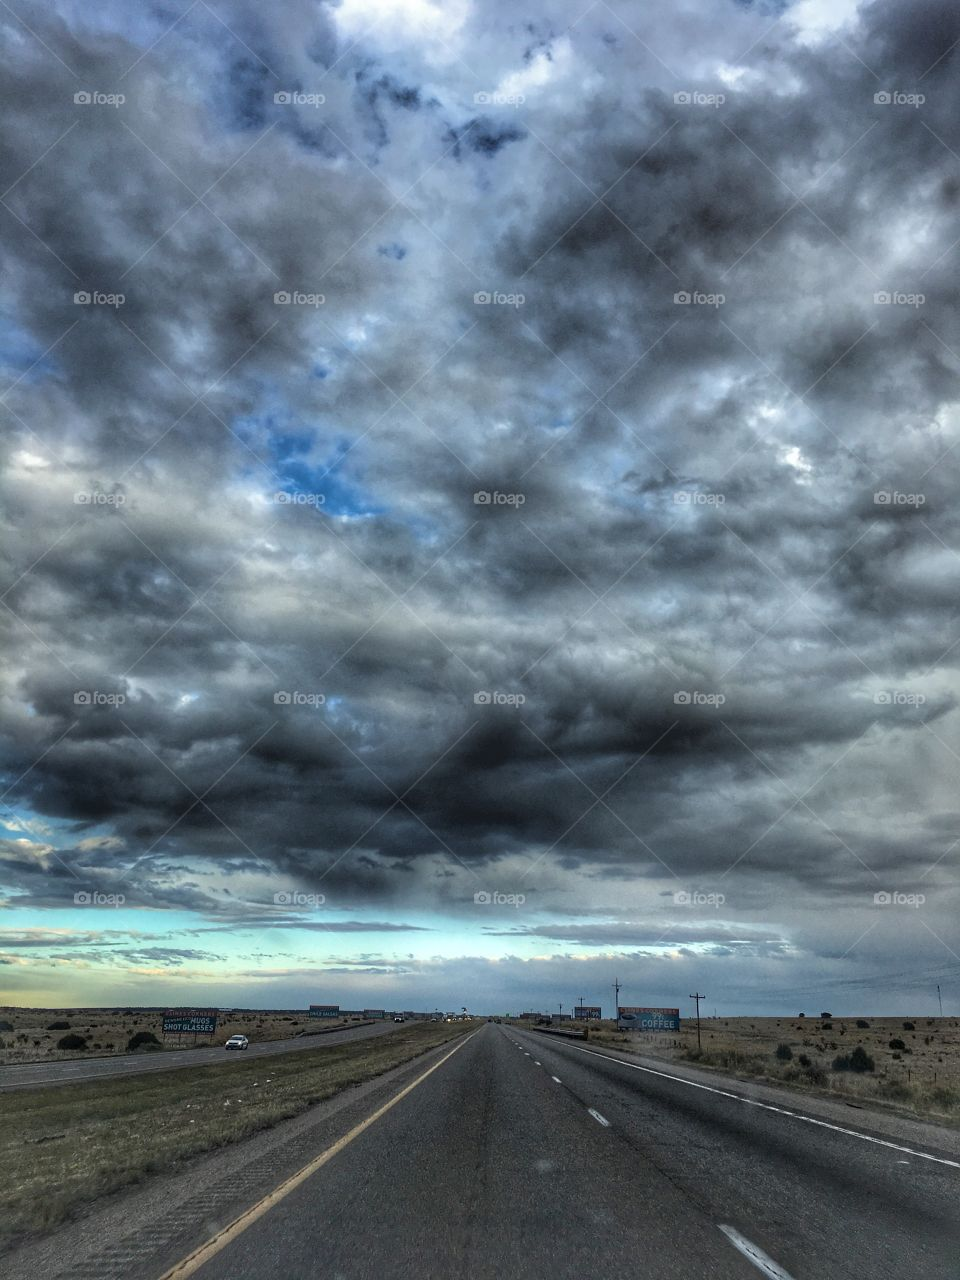 The grey road goes on underneath a grey sky. Traveling is a happy story